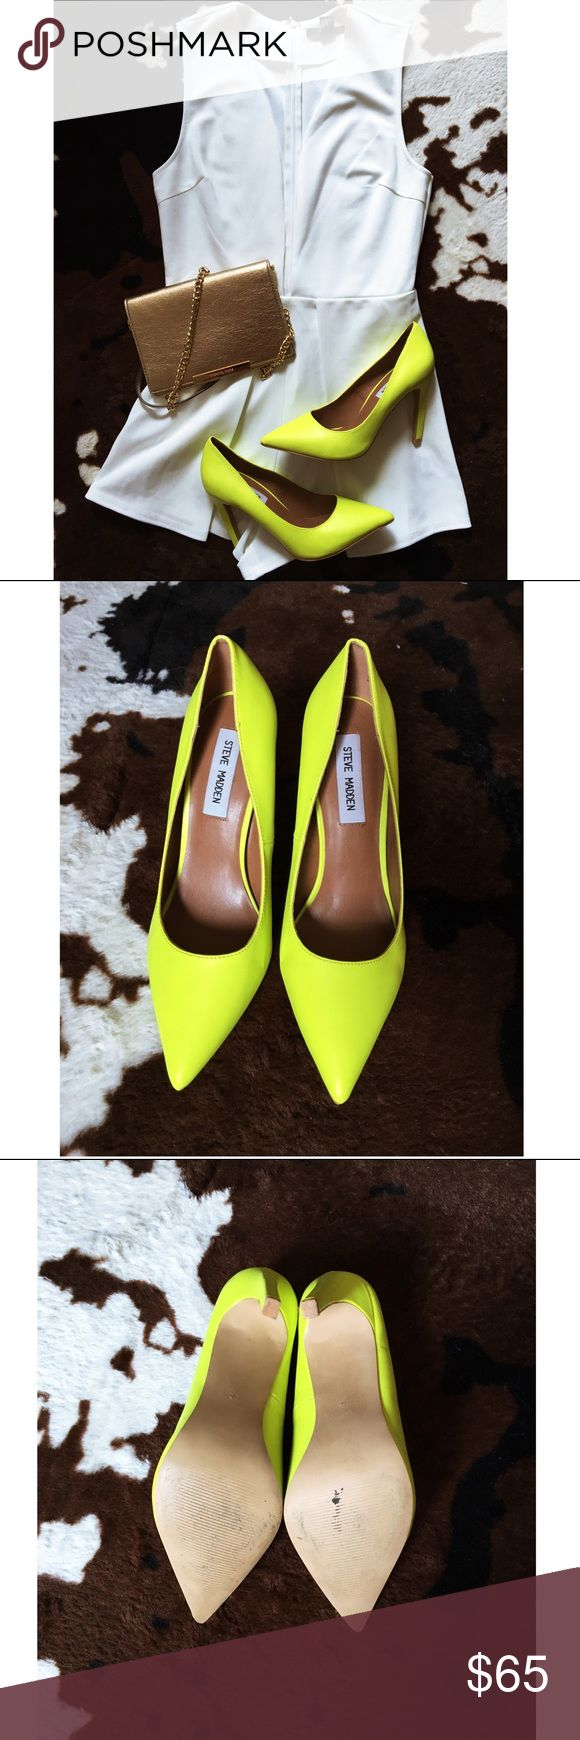 Steve Madden Yellow Pumps Sold out color! Worn once! Steve Madden bright yellow pumps. Great statement shoe to your outfit! Steve Madden Shoes Heels